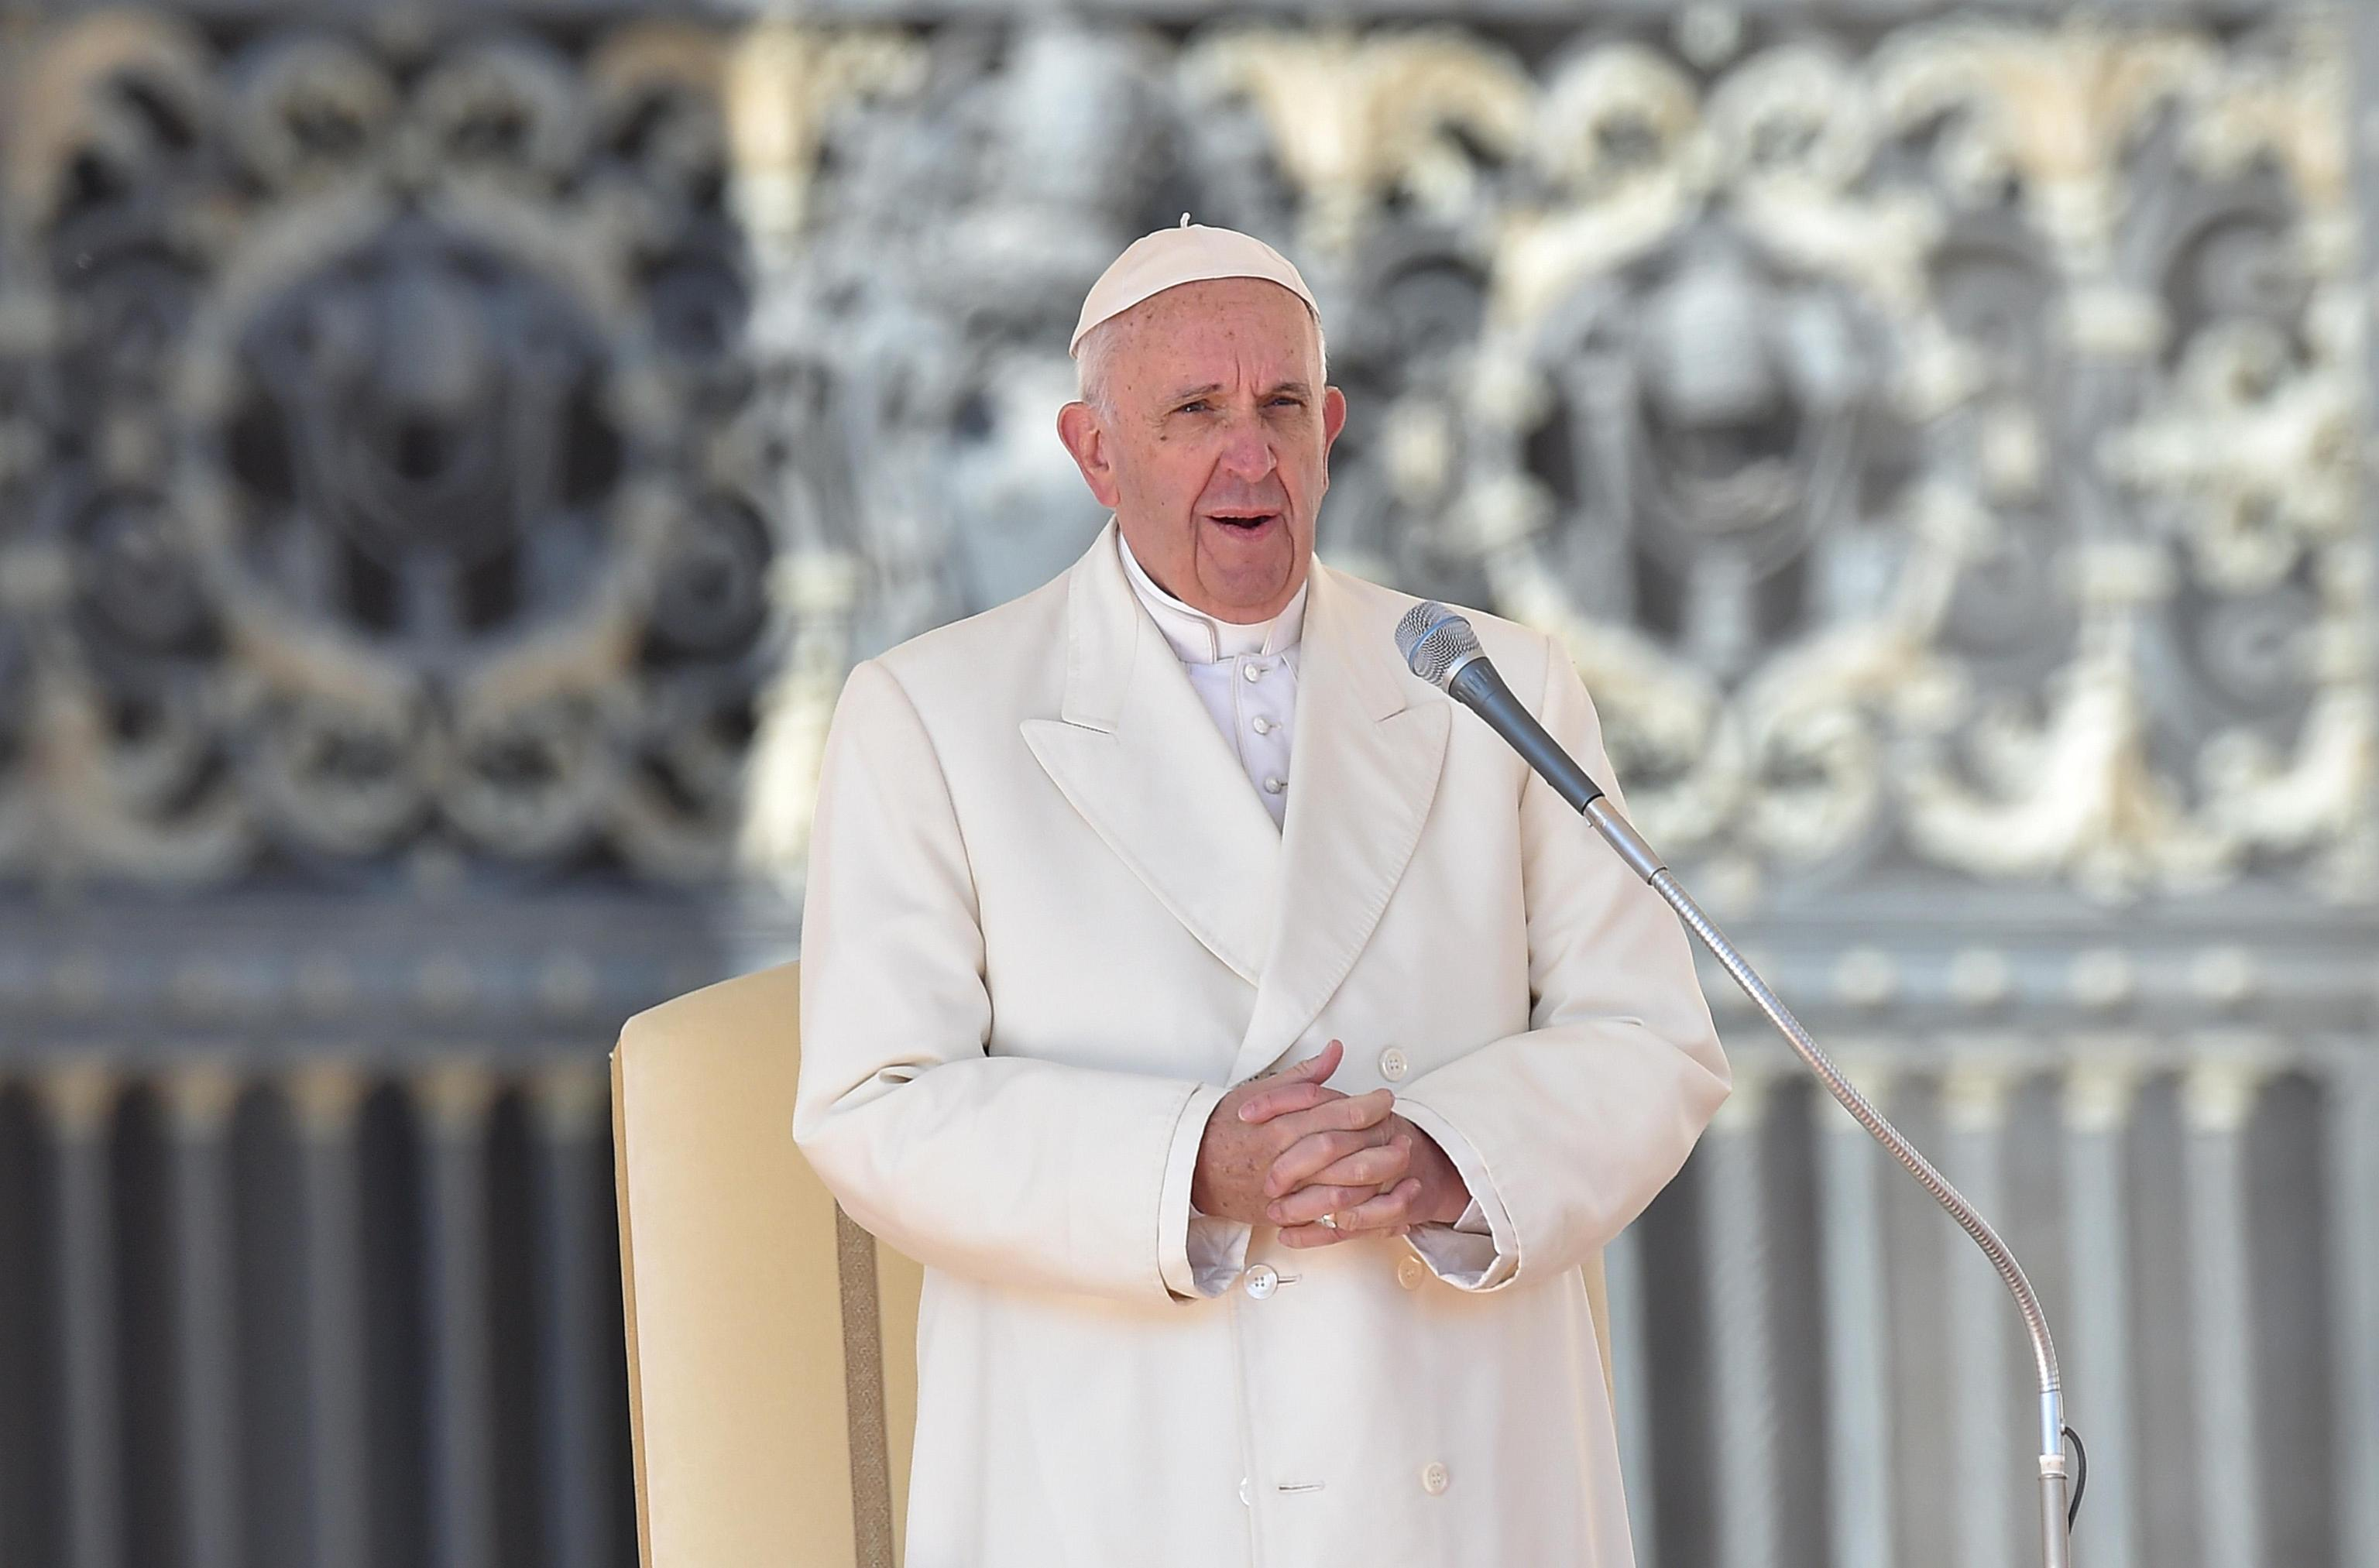 Pope Francis leads the weekly general audience in Saint Peters Square, Vatican City, March 2, 2016.